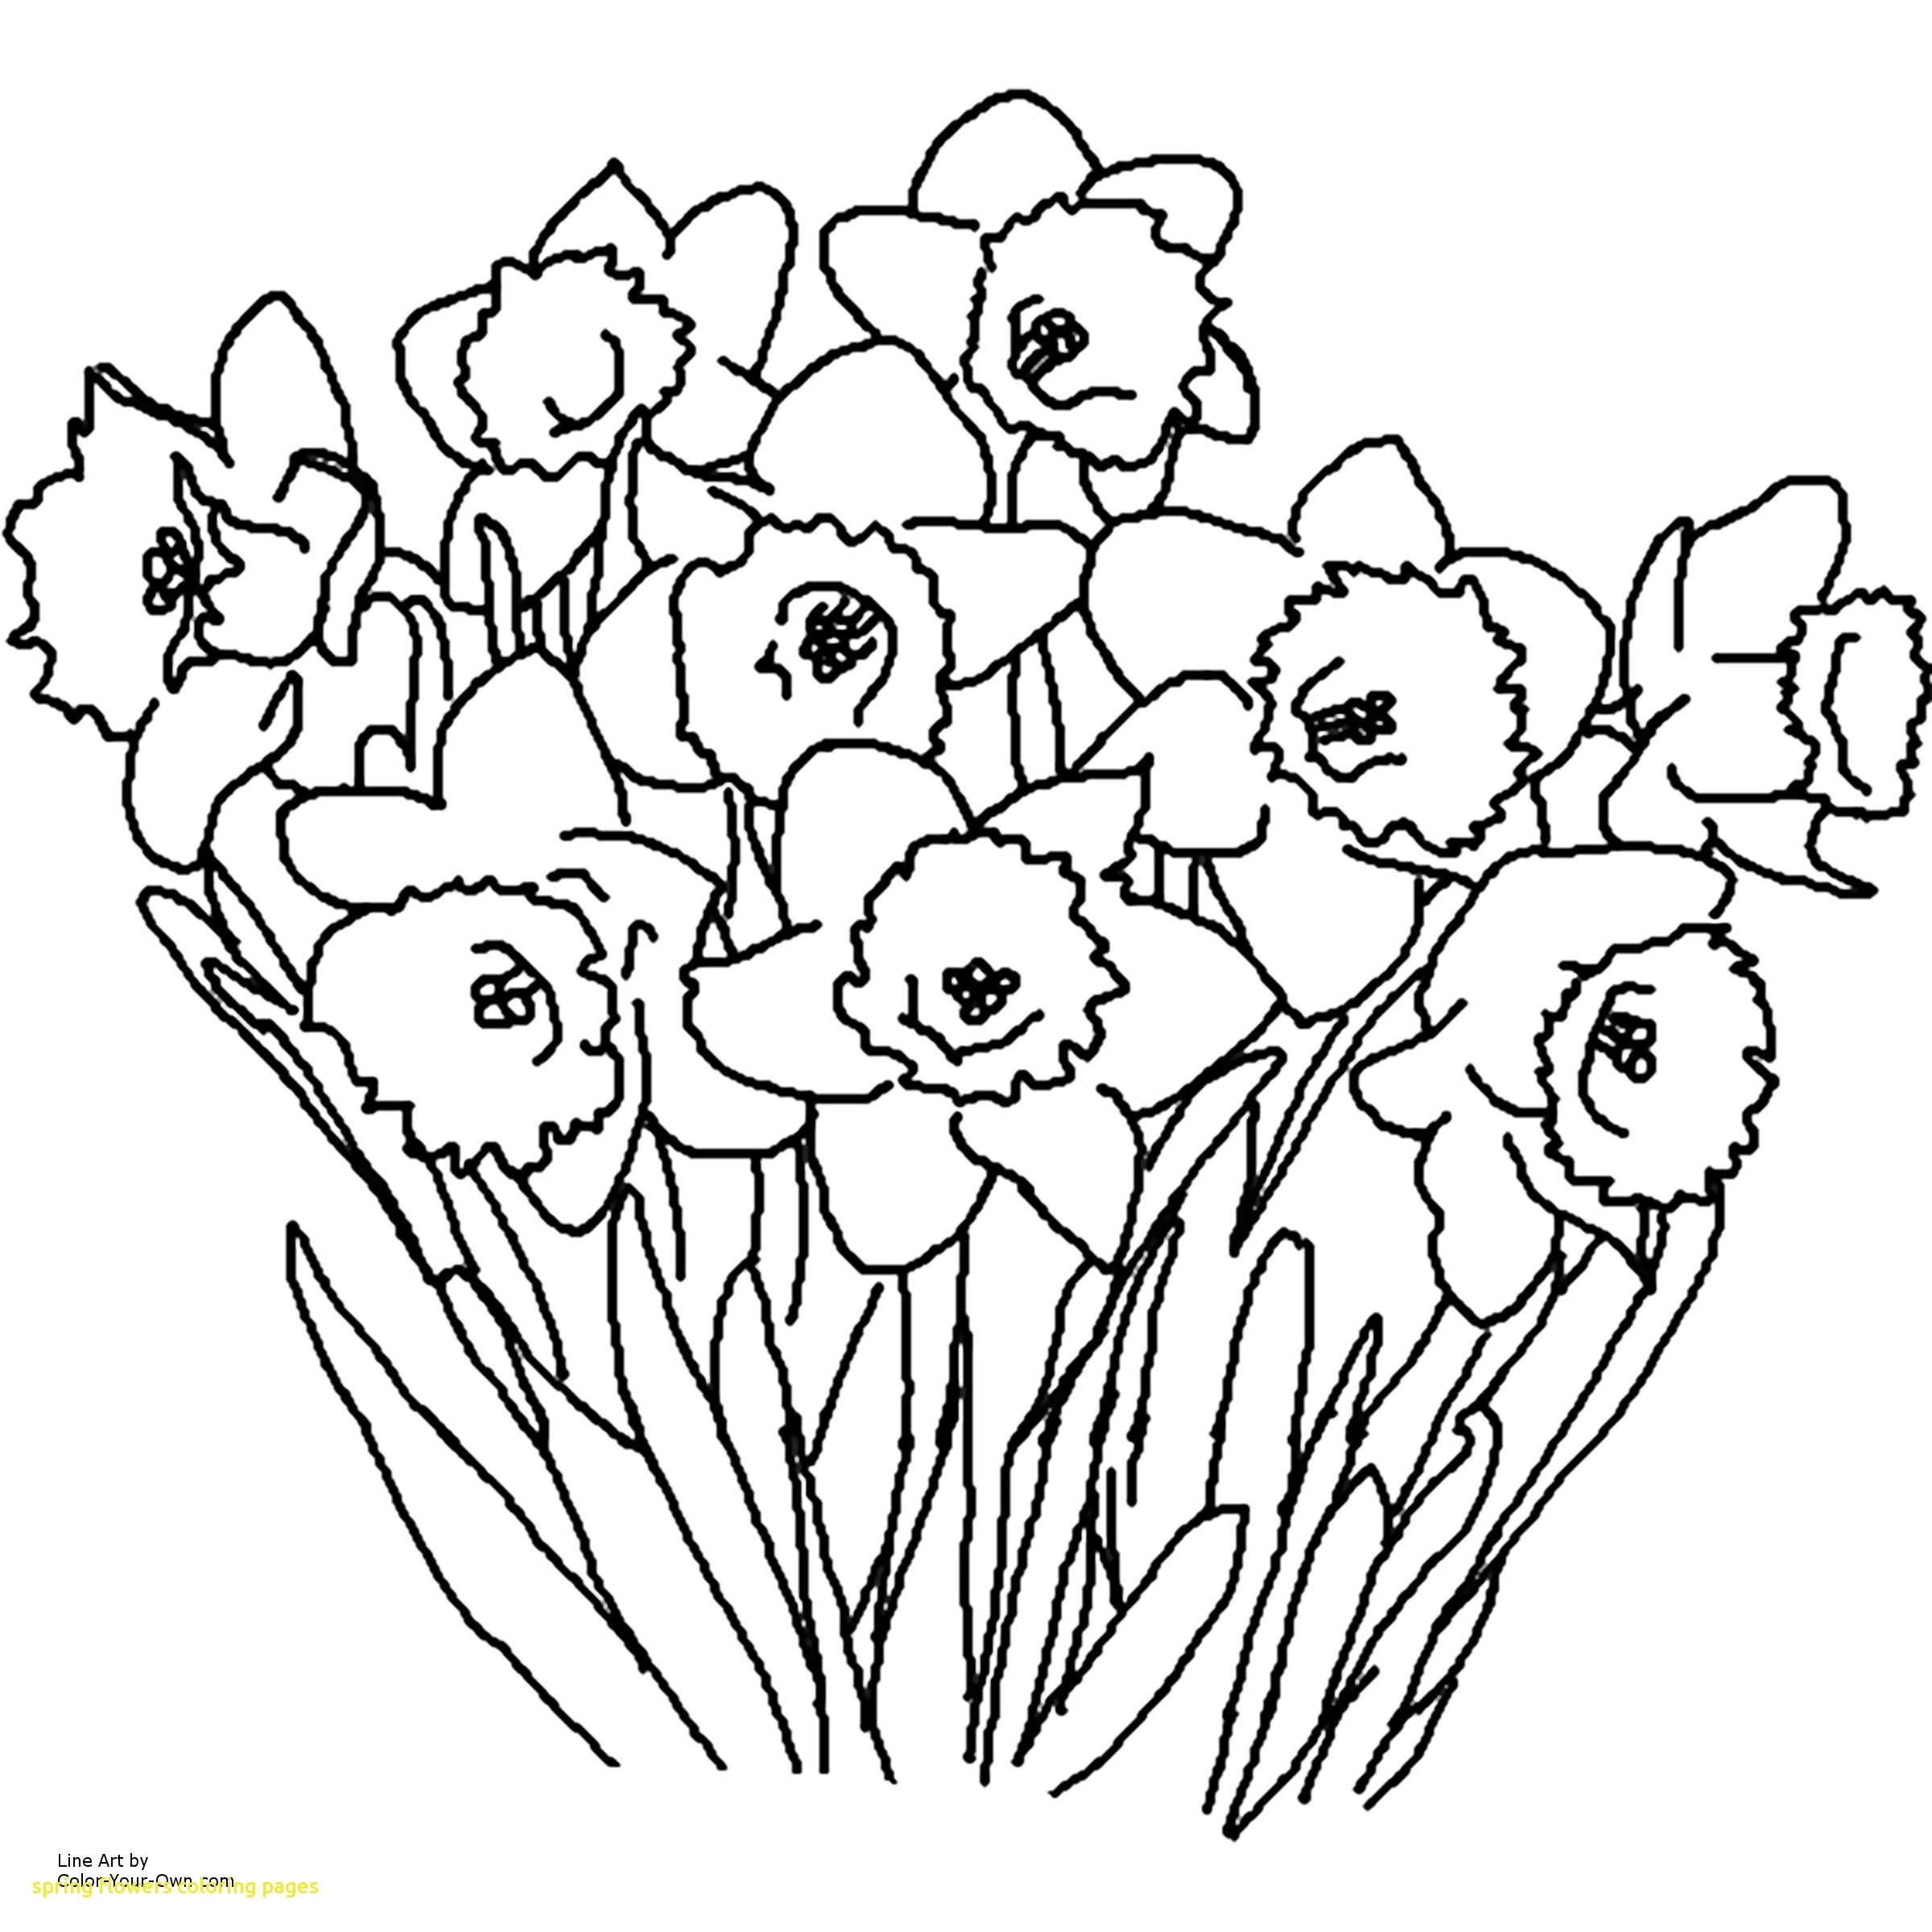 New Daffodil Flower Coloring Pages Collection Printable Of Daffodil Coloring Pages Gallery